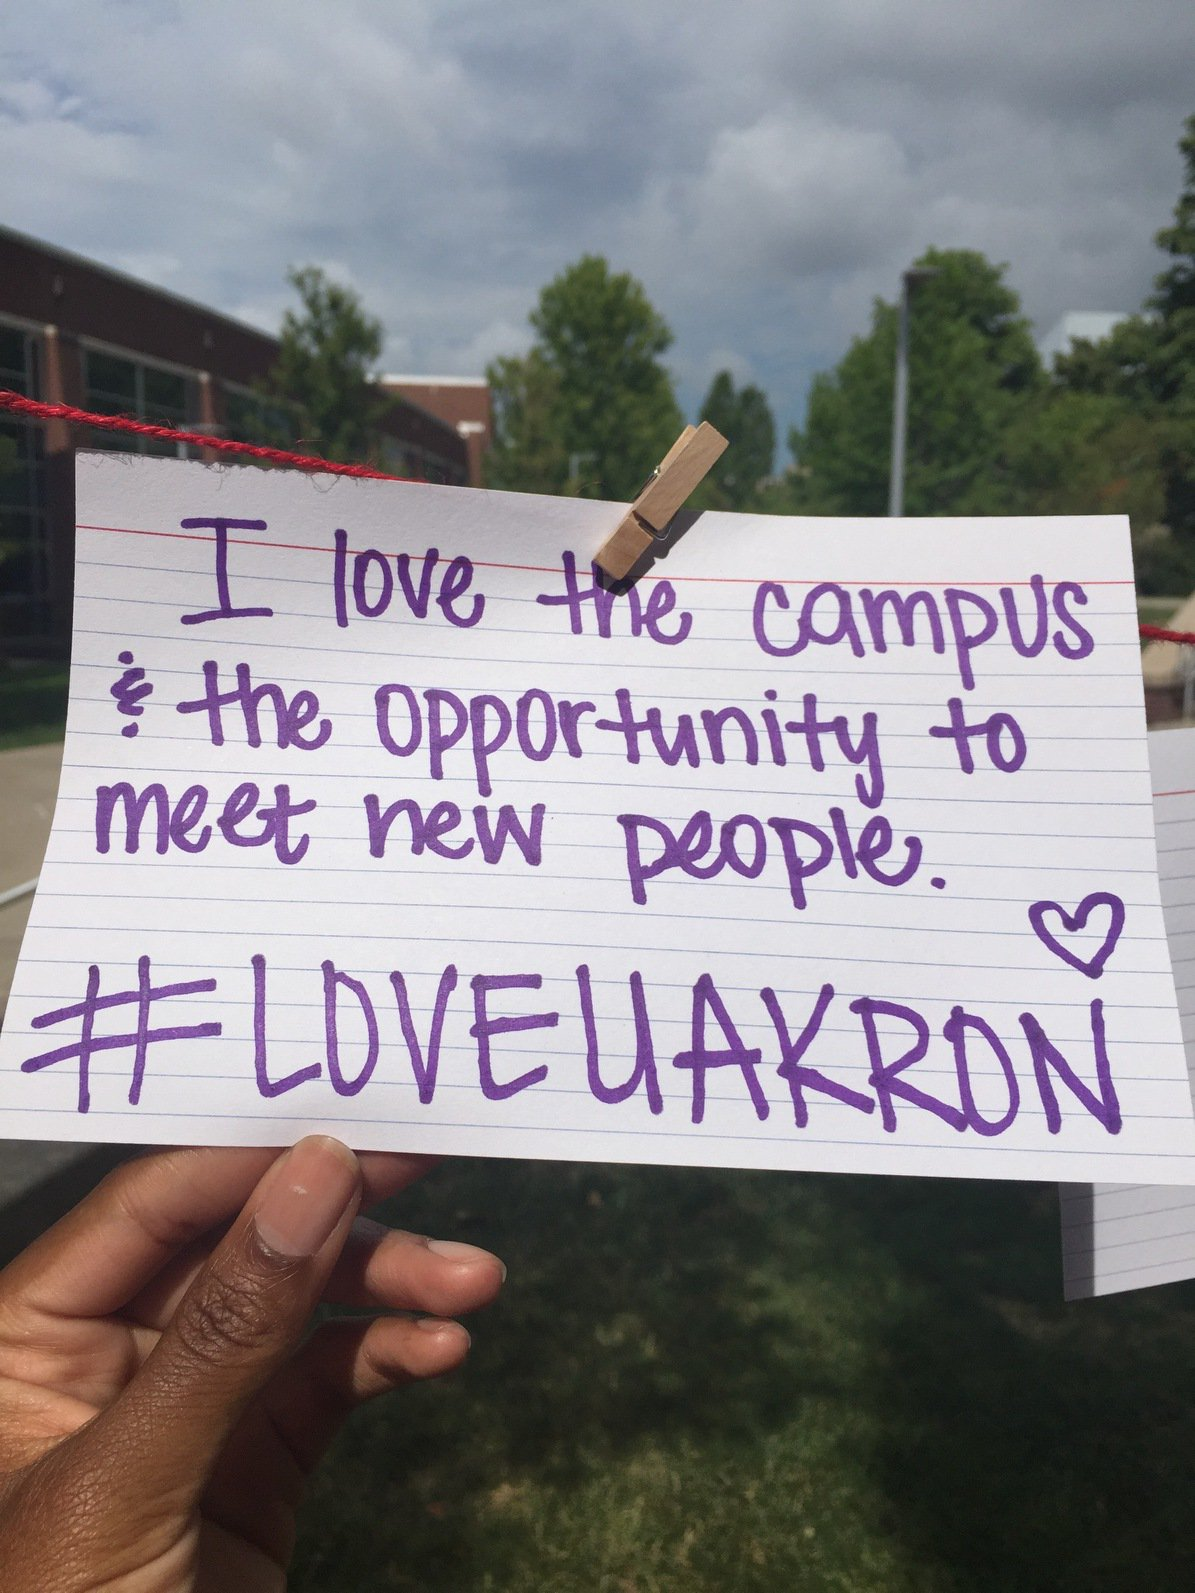 Thumbnail for #LoveUAkron campaign celebrates UA